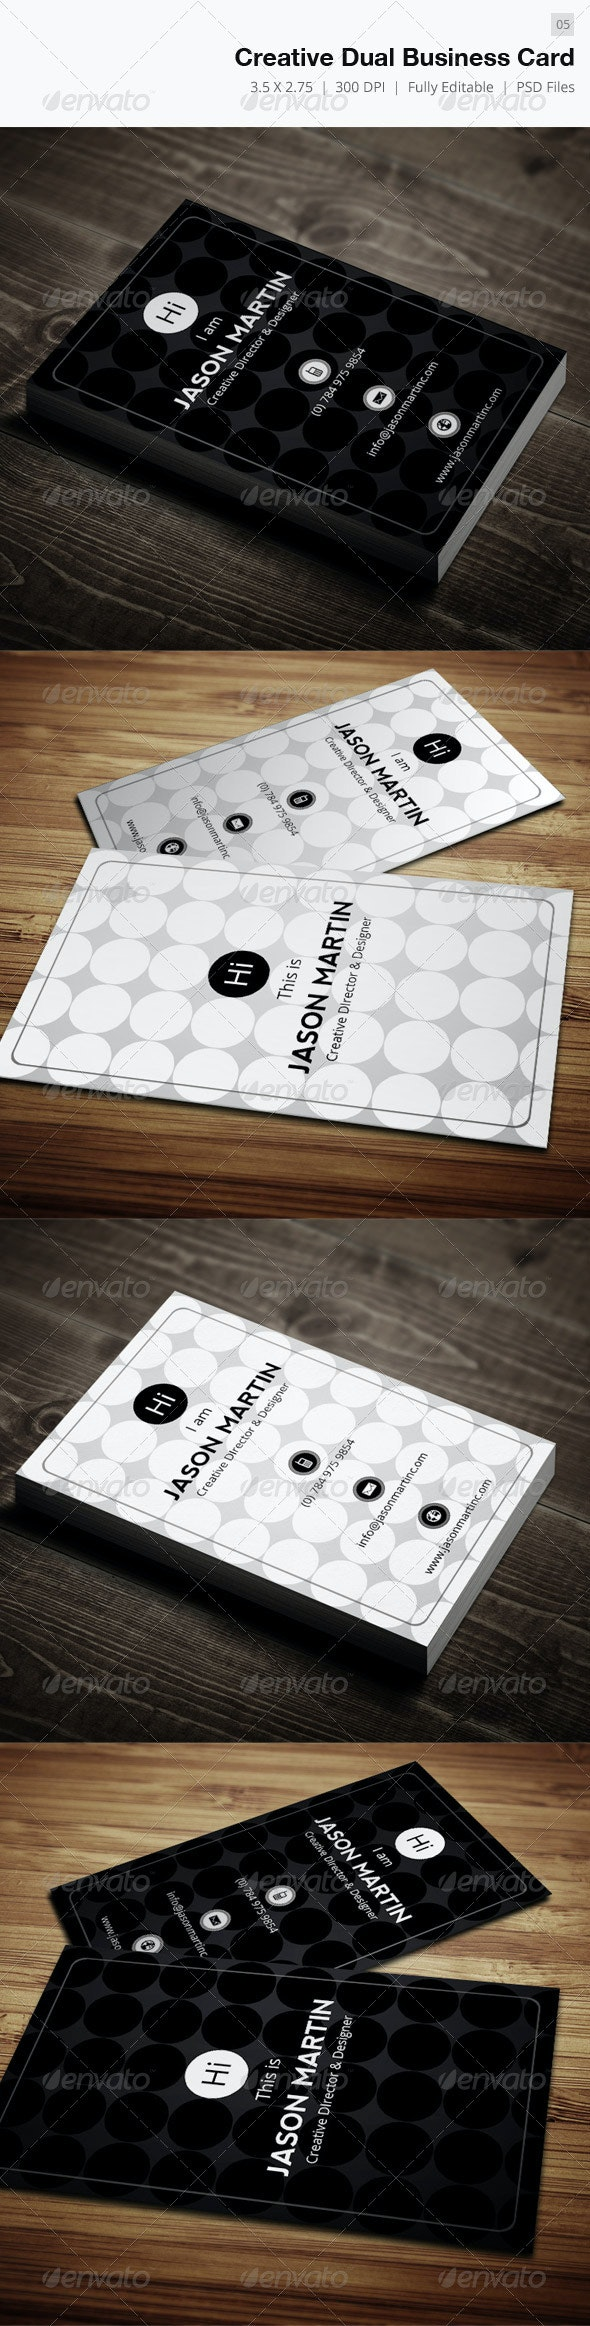 Creative Dual Business Card - 05 - Creative Business Cards